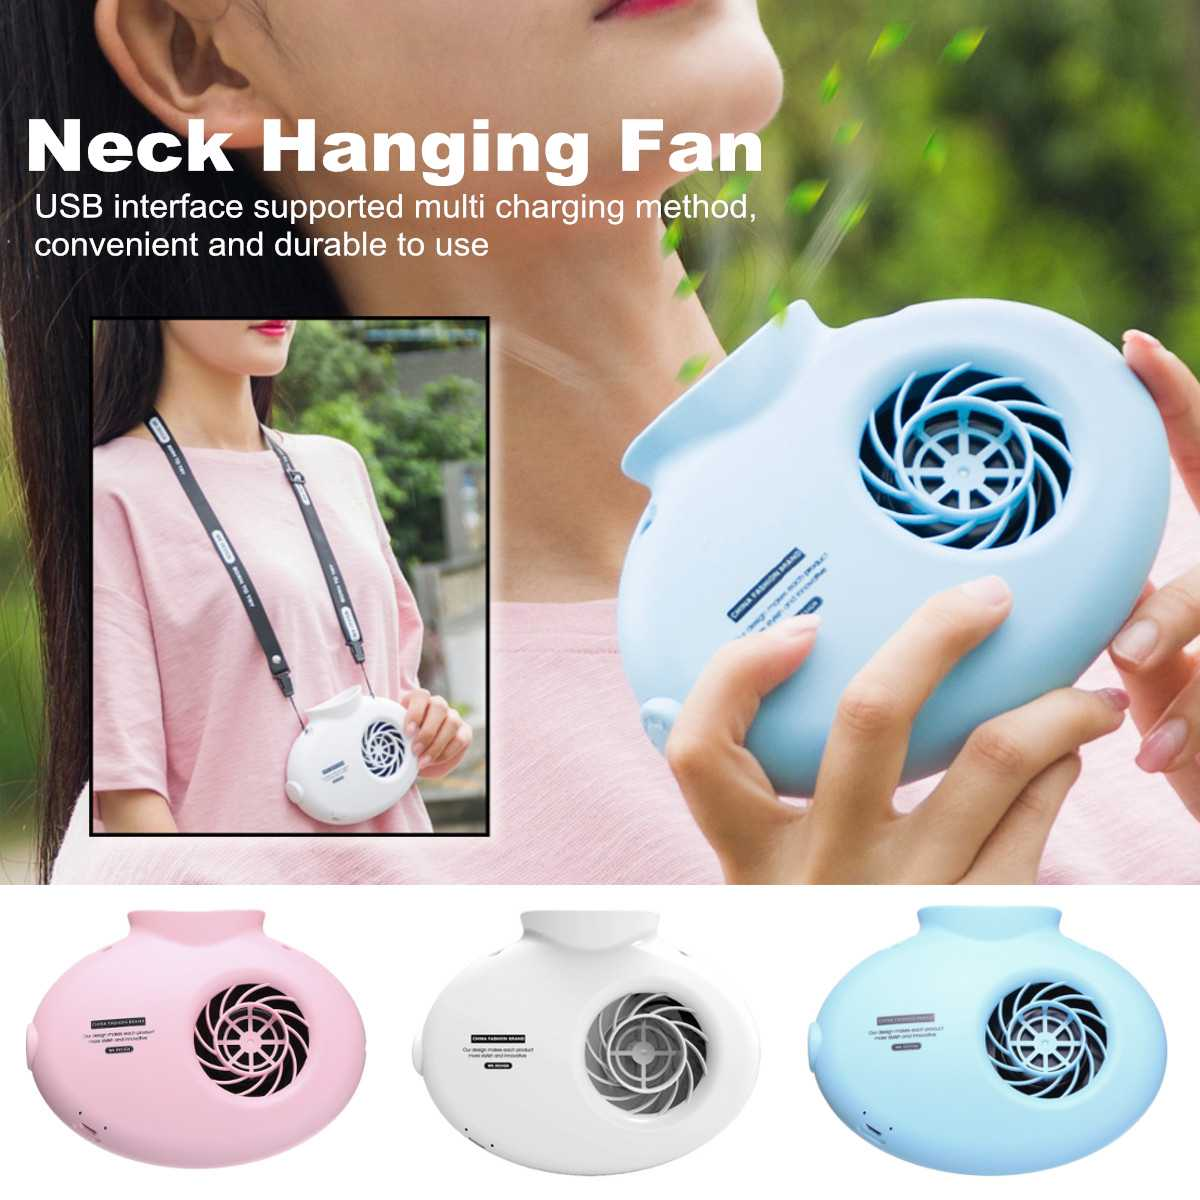 Portable Battery Operated Neck Hanging Fan USB Rechargeable Mini Desk Air Cooler Outdoor Indoor Mini Fan Appliance 4W 3 ColorsPortable Battery Operated Neck Hanging Fan USB Rechargeable Mini Desk Air Cooler Outdoor Indoor Mini Fan Appliance 4W 3 Colors